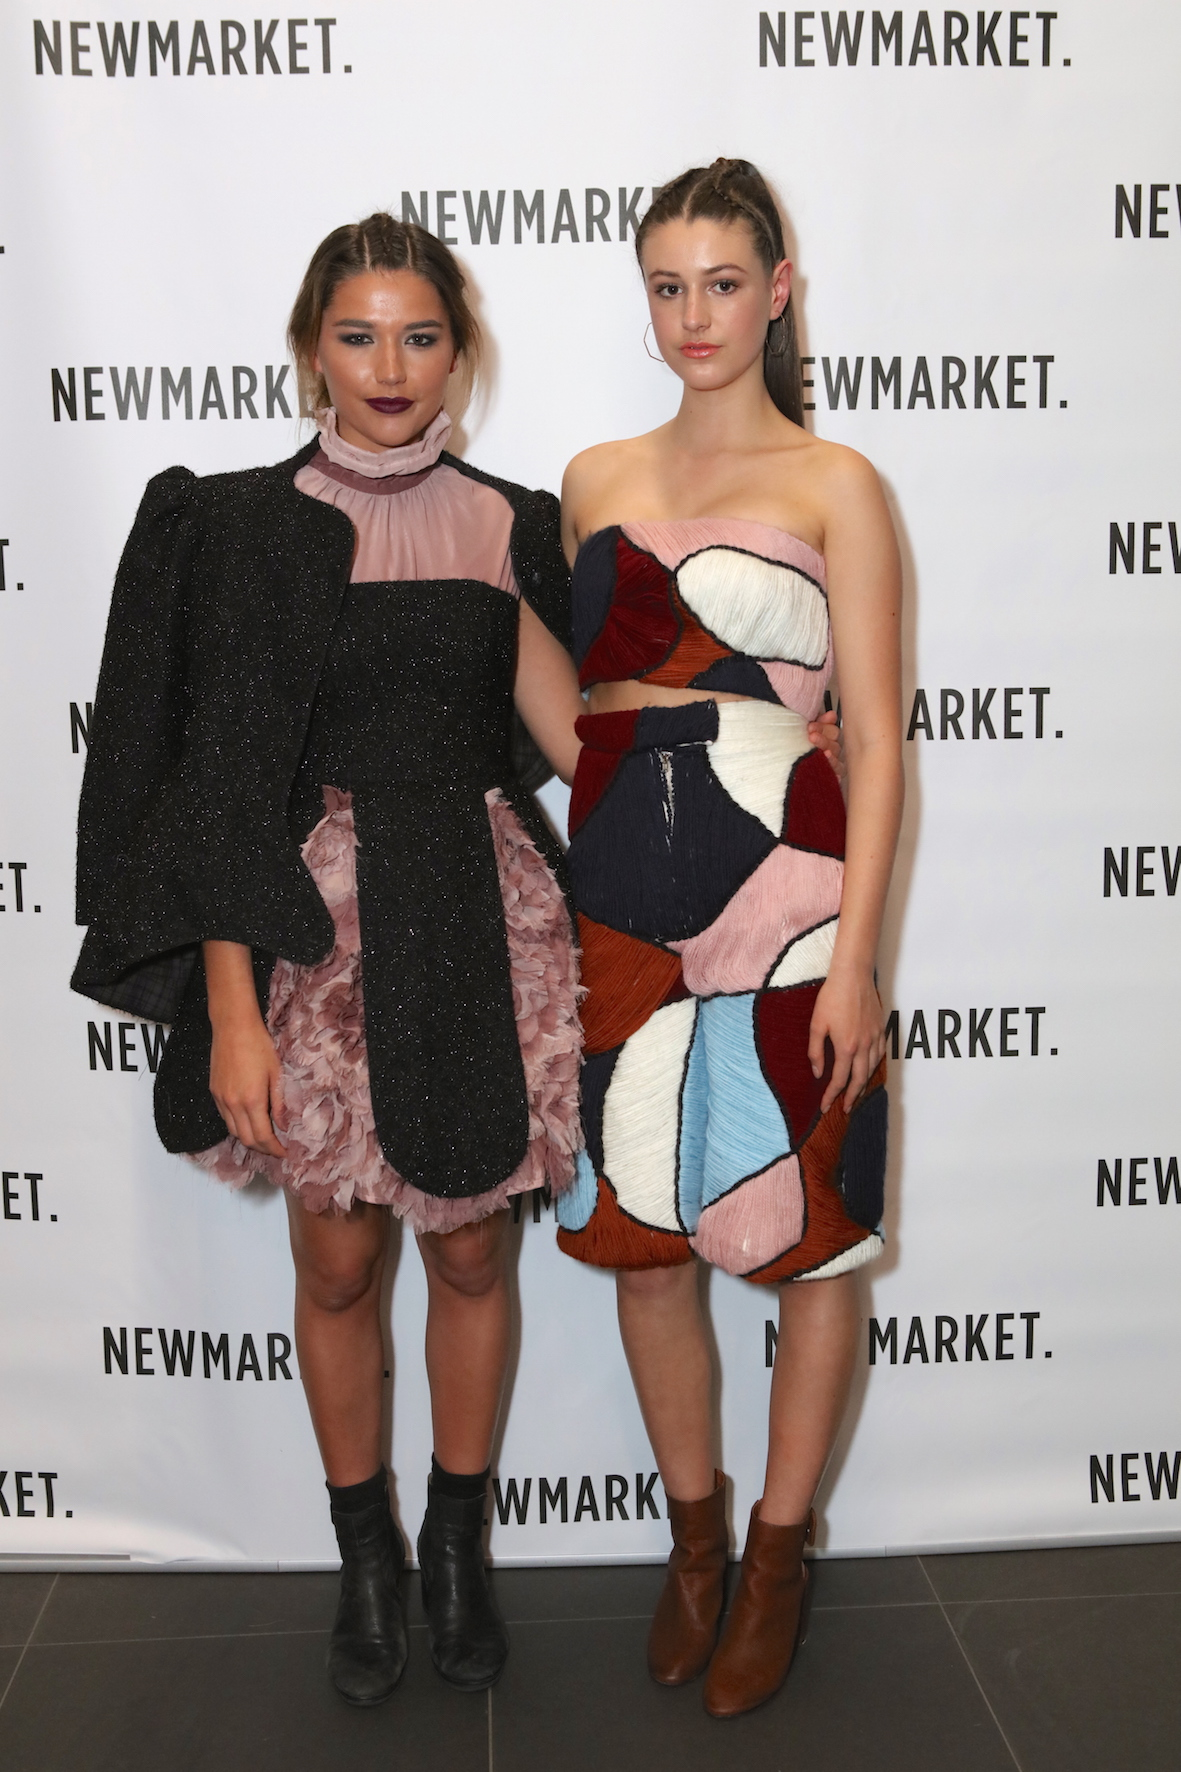 The two winning designs at the Newmarket Young Fashion Designer Award 2015